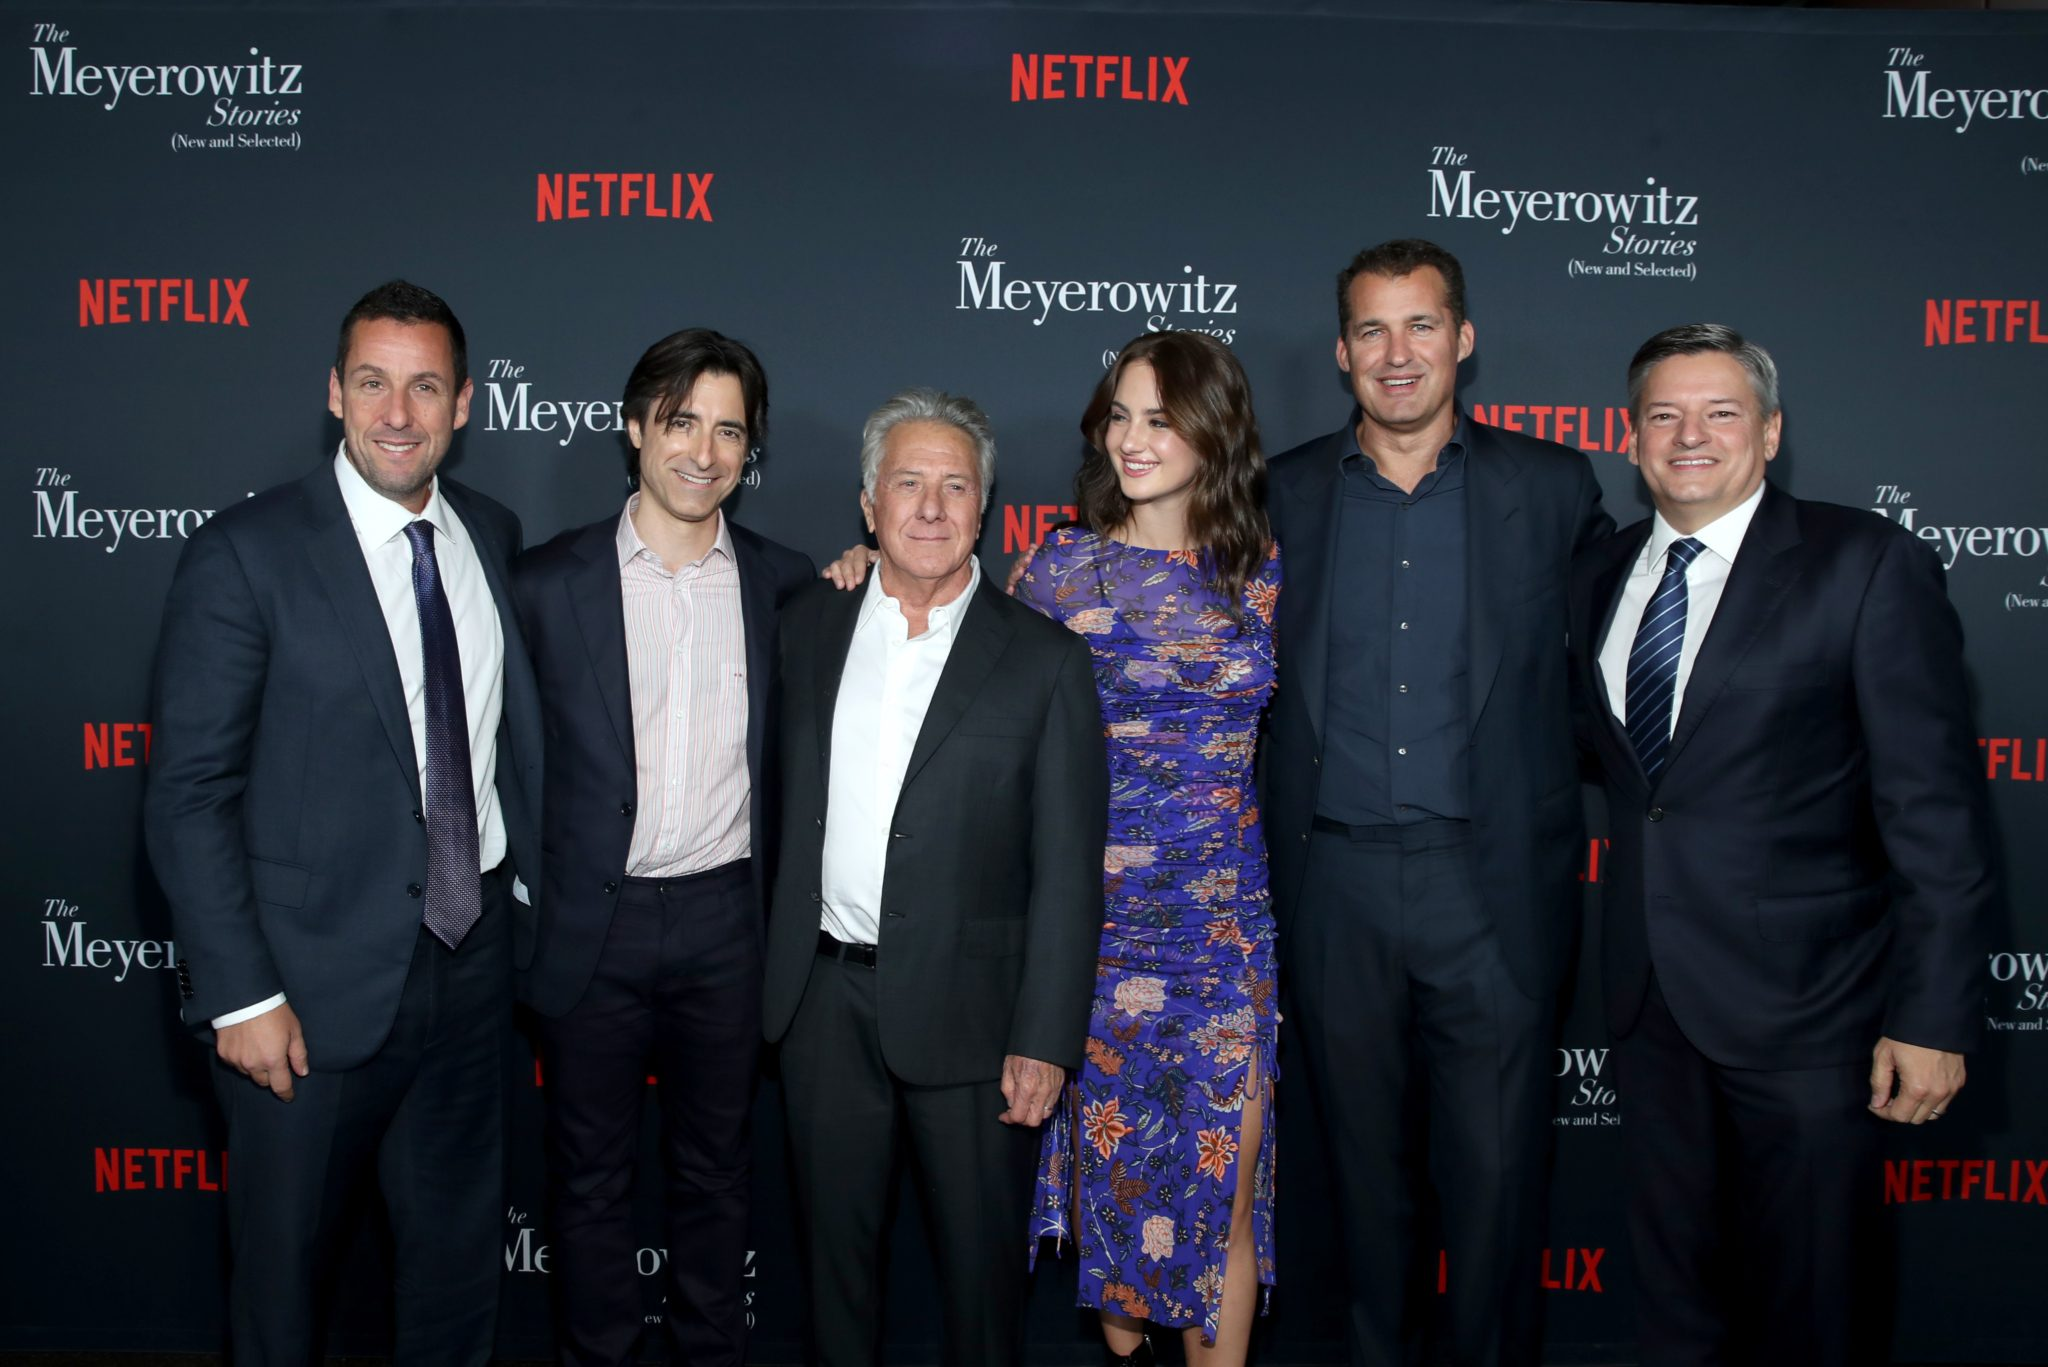 The Meyerowitz Stories (New And Selected) Special Screening In Los Angeles, CA